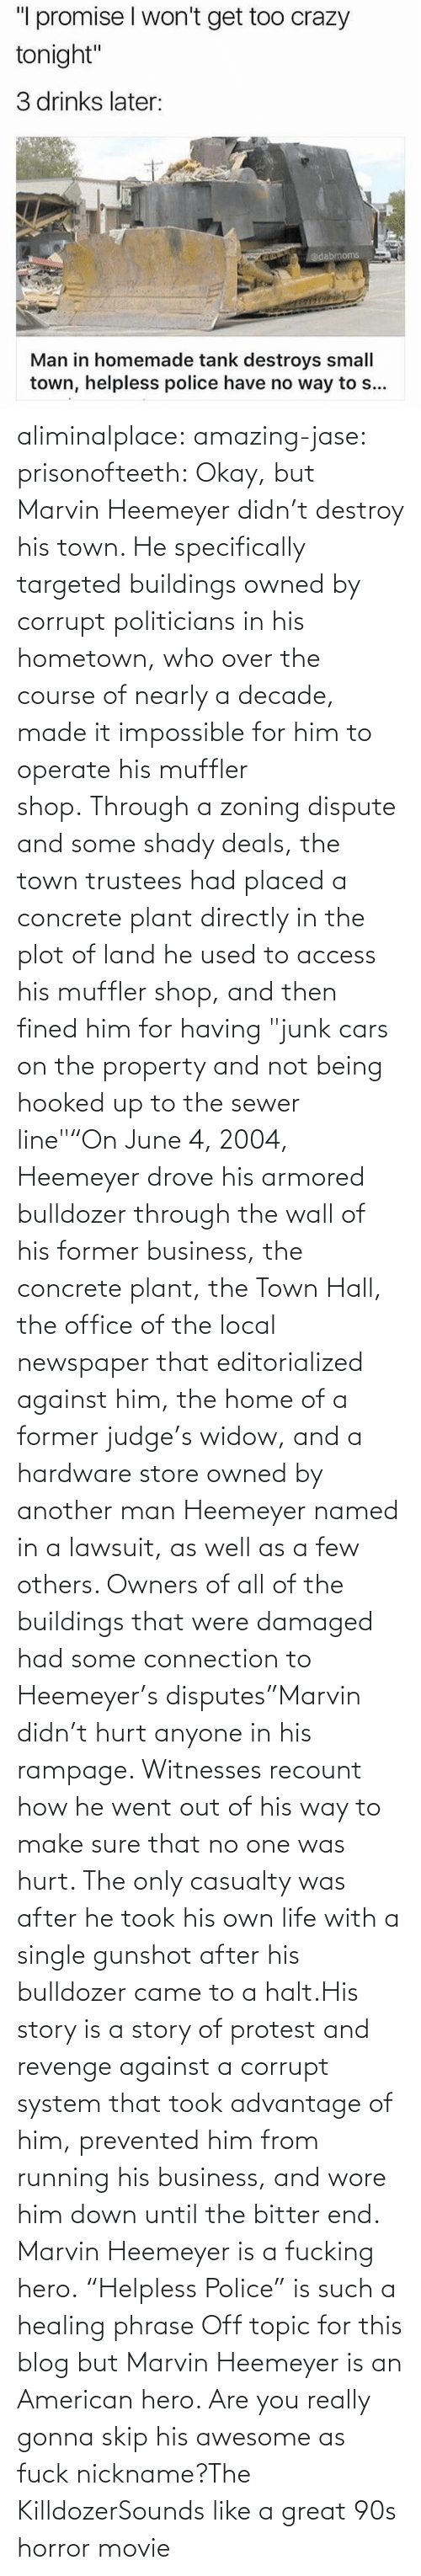 "Connection: aliminalplace: amazing-jase:  prisonofteeth: Okay, but Marvin Heemeyer didn't destroy his town. He specifically targeted buildings owned by corrupt politicians in his hometown, who over the course of nearly a decade, made it impossible for him to operate his muffler shop. Through a zoning dispute and some shady deals, the town trustees had placed a concrete plant directly in the plot of land he used to access his muffler shop, and then fined him for having ""junk cars on the property and not being hooked up to the sewer line""""On June 4, 2004, Heemeyer drove his armored bulldozer through the wall of his former business, the concrete plant, the Town Hall, the office of the local newspaper that editorialized against him, the home of a former judge's widow, and a hardware store owned by another man Heemeyer named in a lawsuit, as well as a few others. Owners of all of the buildings that were damaged had some connection to Heemeyer's disputes""Marvin didn't hurt anyone in his rampage. Witnesses recount how he went out of his way to make sure that no one was hurt. The only casualty was after he took his own life with a single gunshot after his bulldozer came to a halt.His story is a story of protest and revenge against a corrupt system that took advantage of him, prevented him from running his business, and wore him down until the bitter end. Marvin Heemeyer is a fucking hero. ""Helpless Police"" is such a healing phrase    Off topic for this blog but Marvin Heemeyer is an American hero.     Are you really gonna skip his awesome as fuck nickname?The KilldozerSounds like a great 90s horror movie"